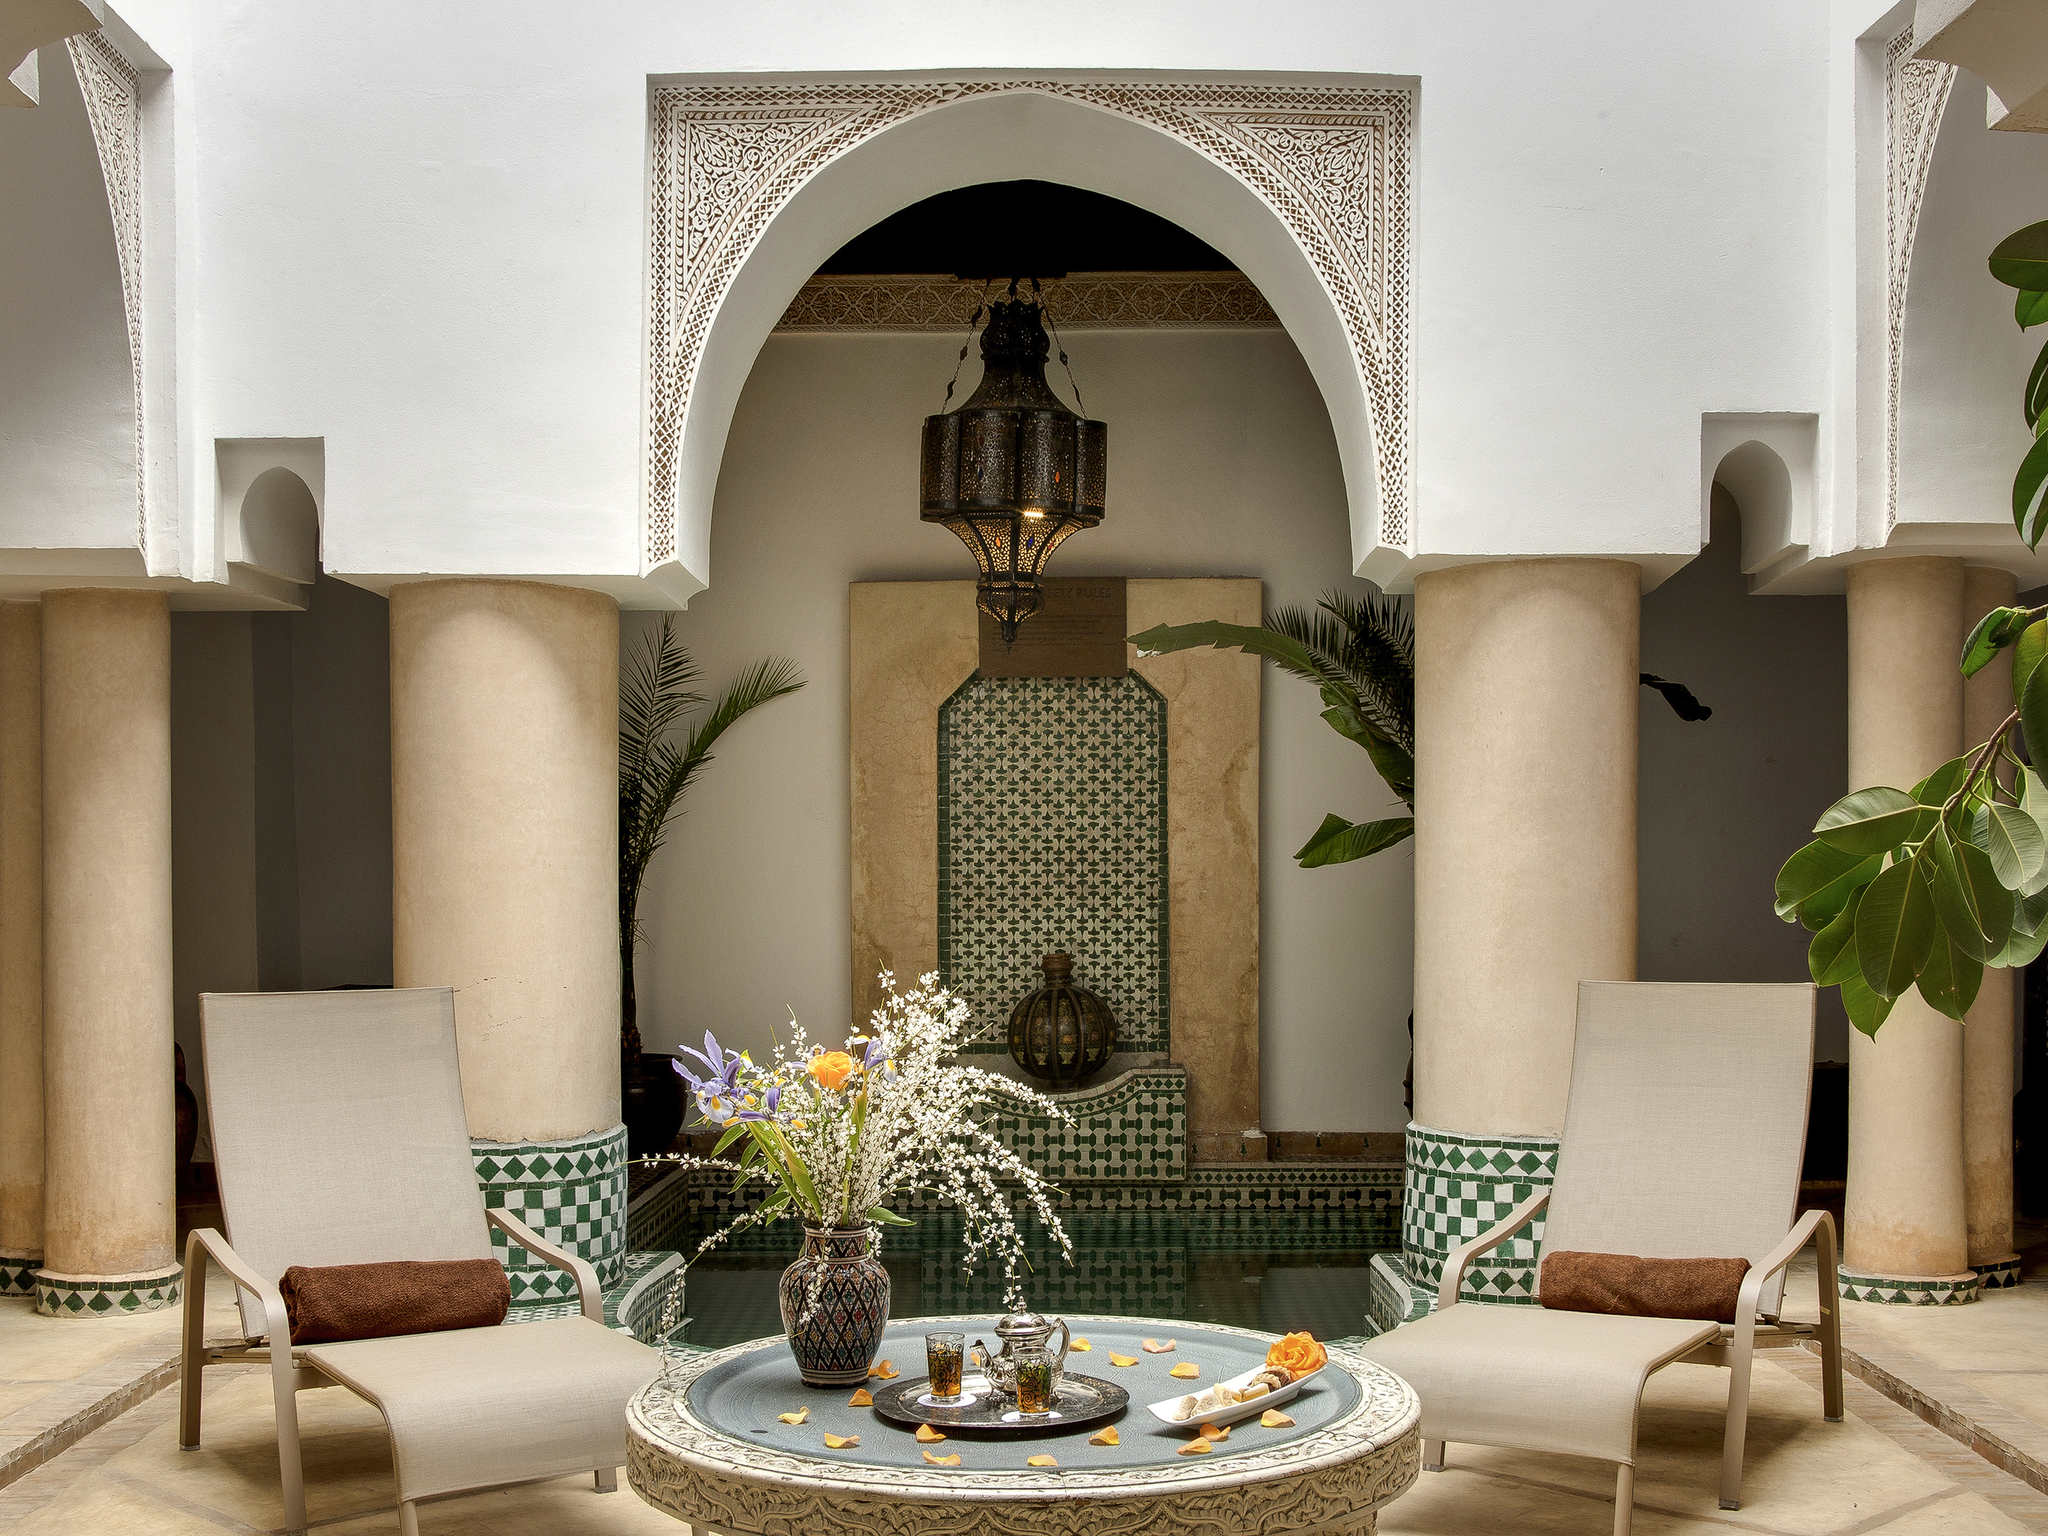 โรงแรม – Angsana Riads Collection Morocco